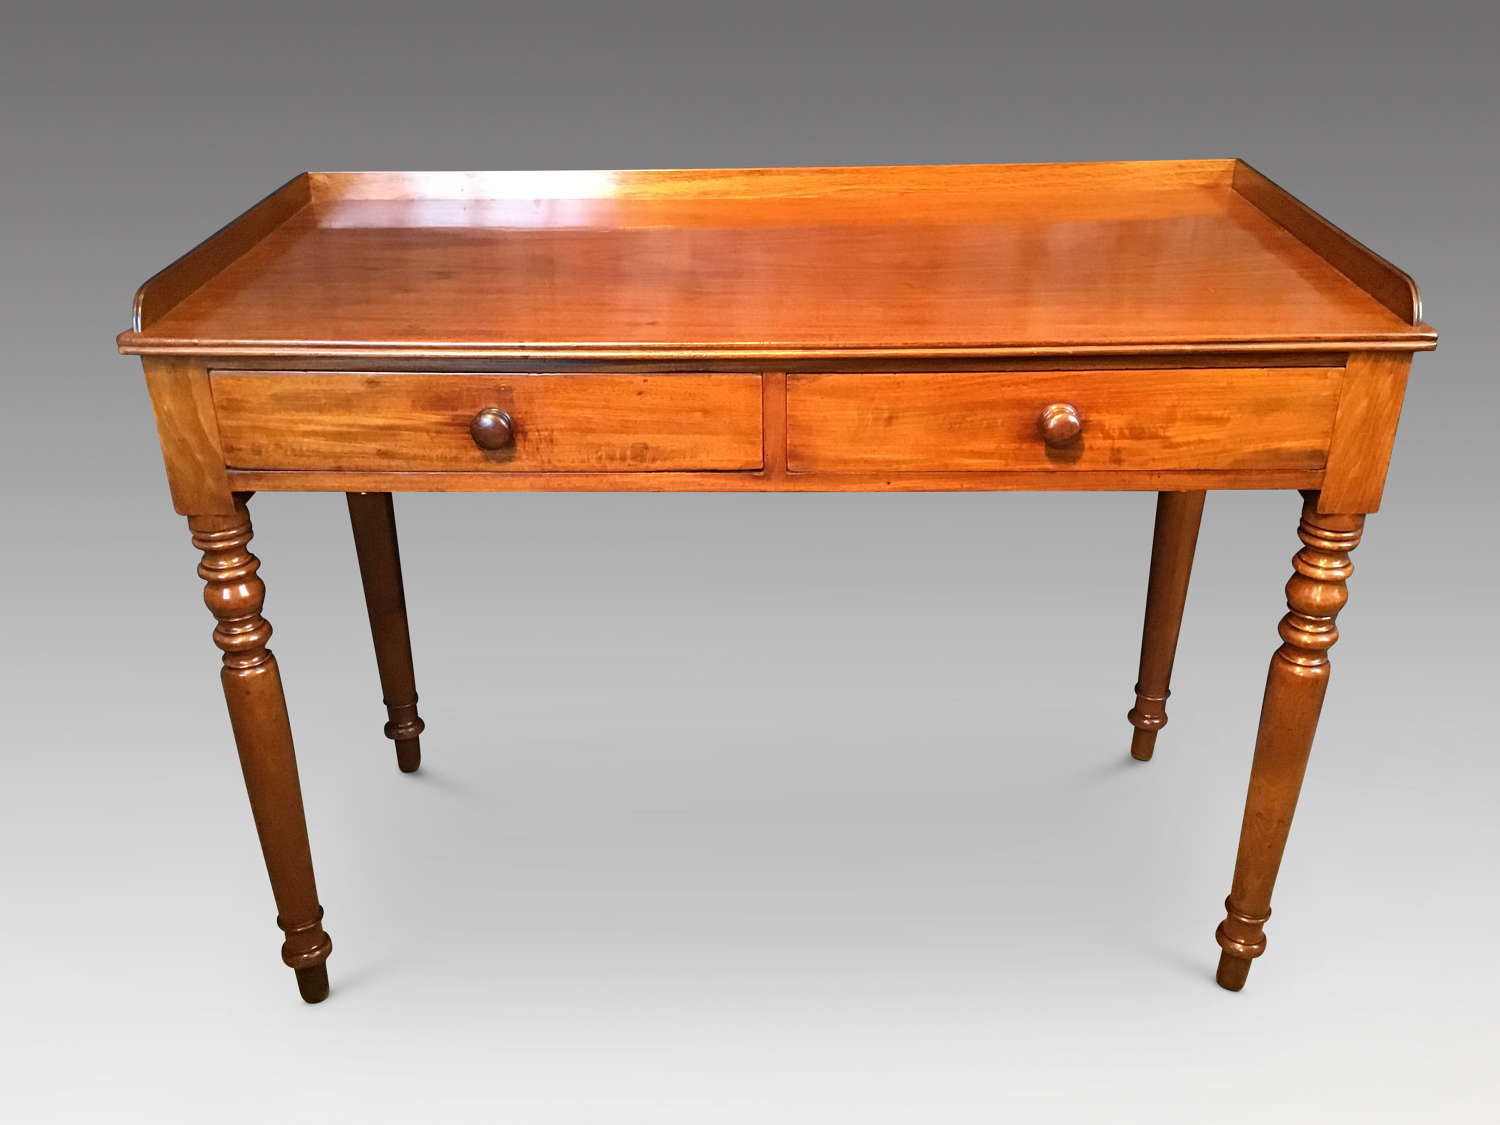 Antique mahogany sidetable.